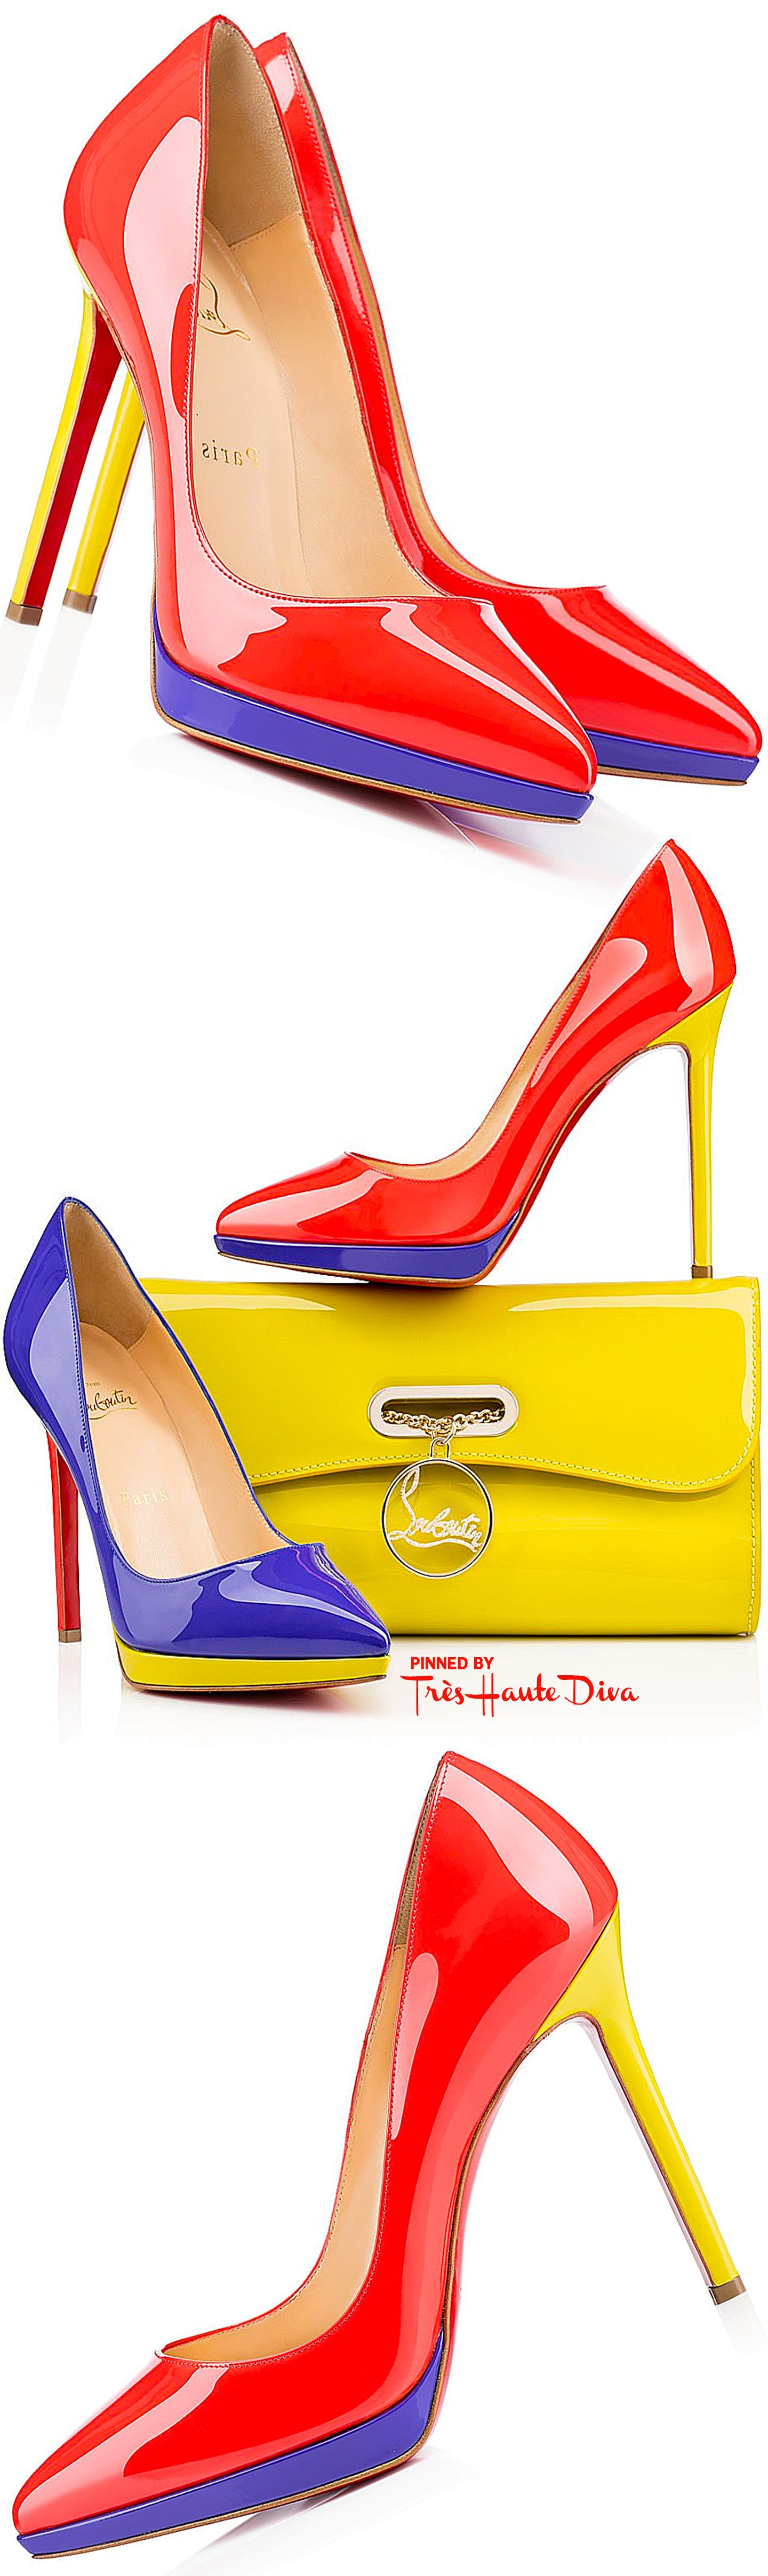 Christian Louboutin 'Pigalle Plato' | The House of Beccaria#